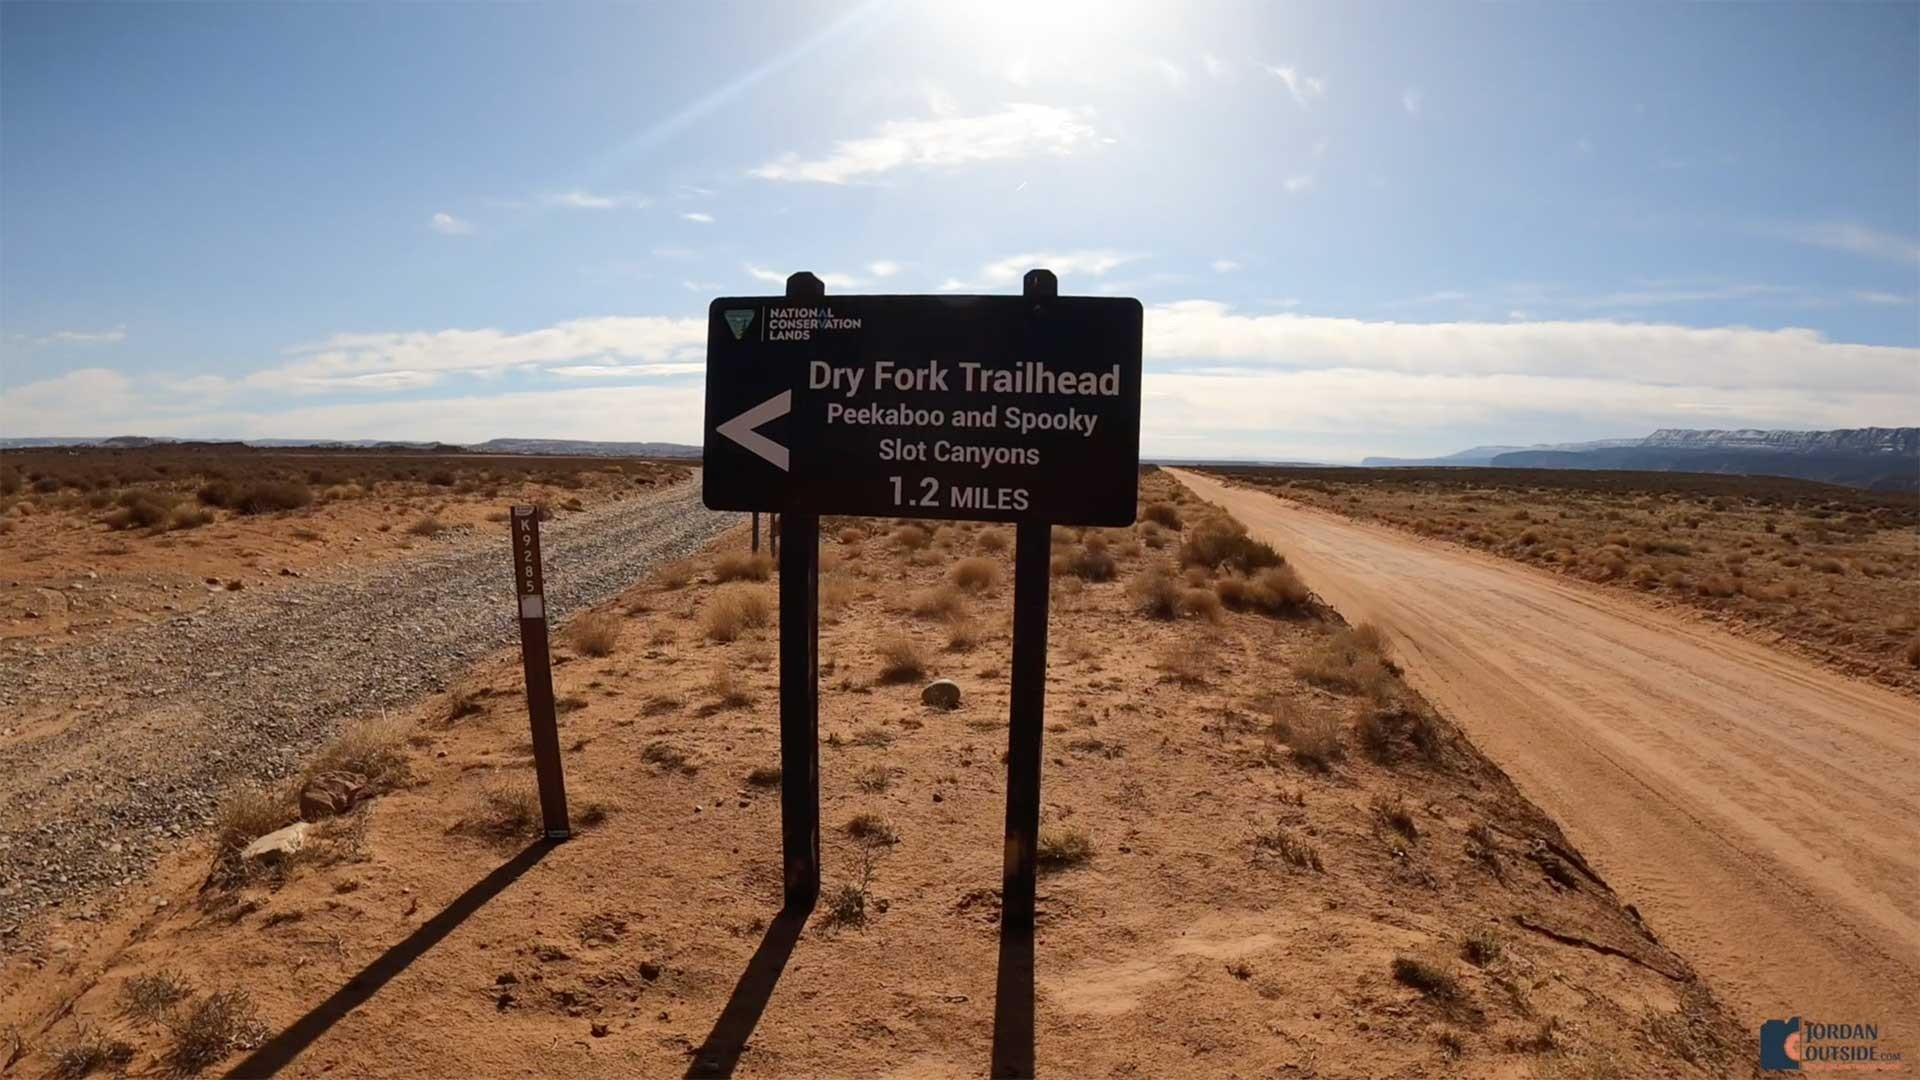 The Dry Fork Trailhead Sign